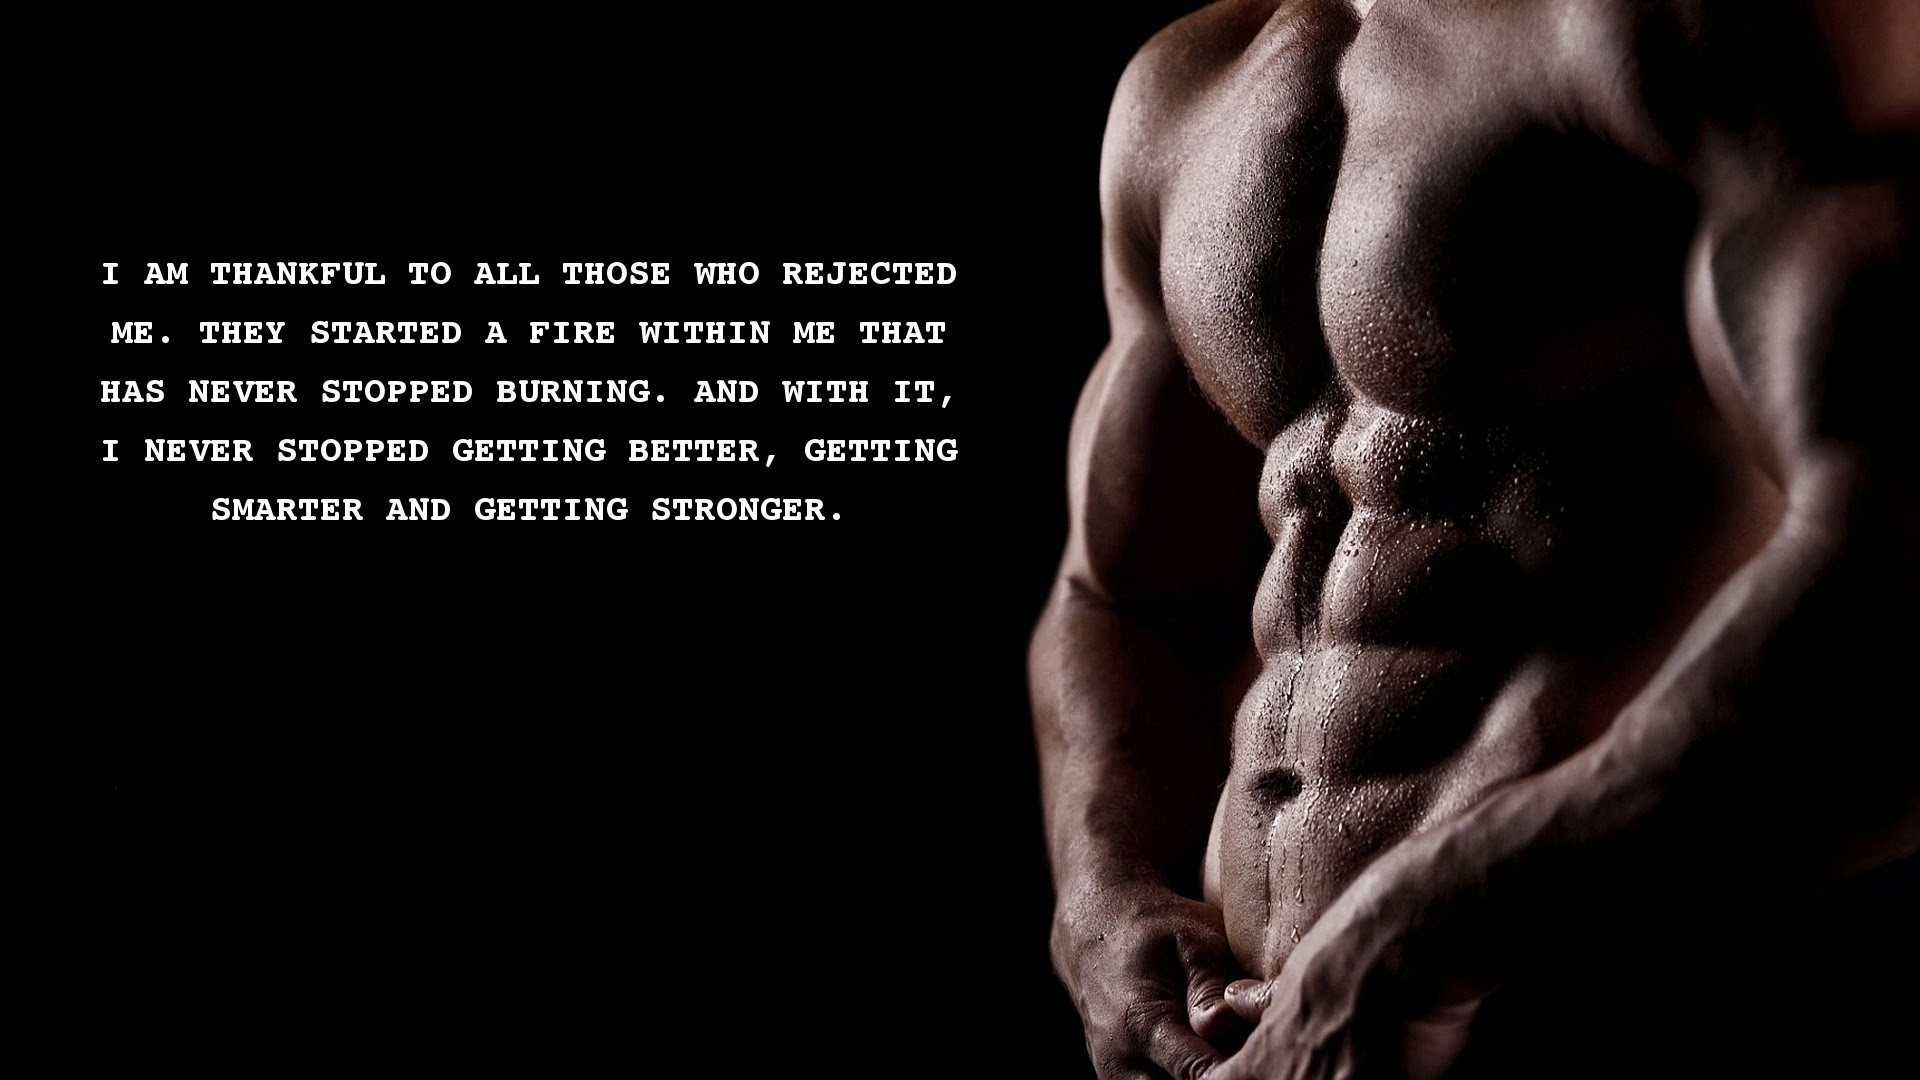 Workout motivational backgrounds download free.